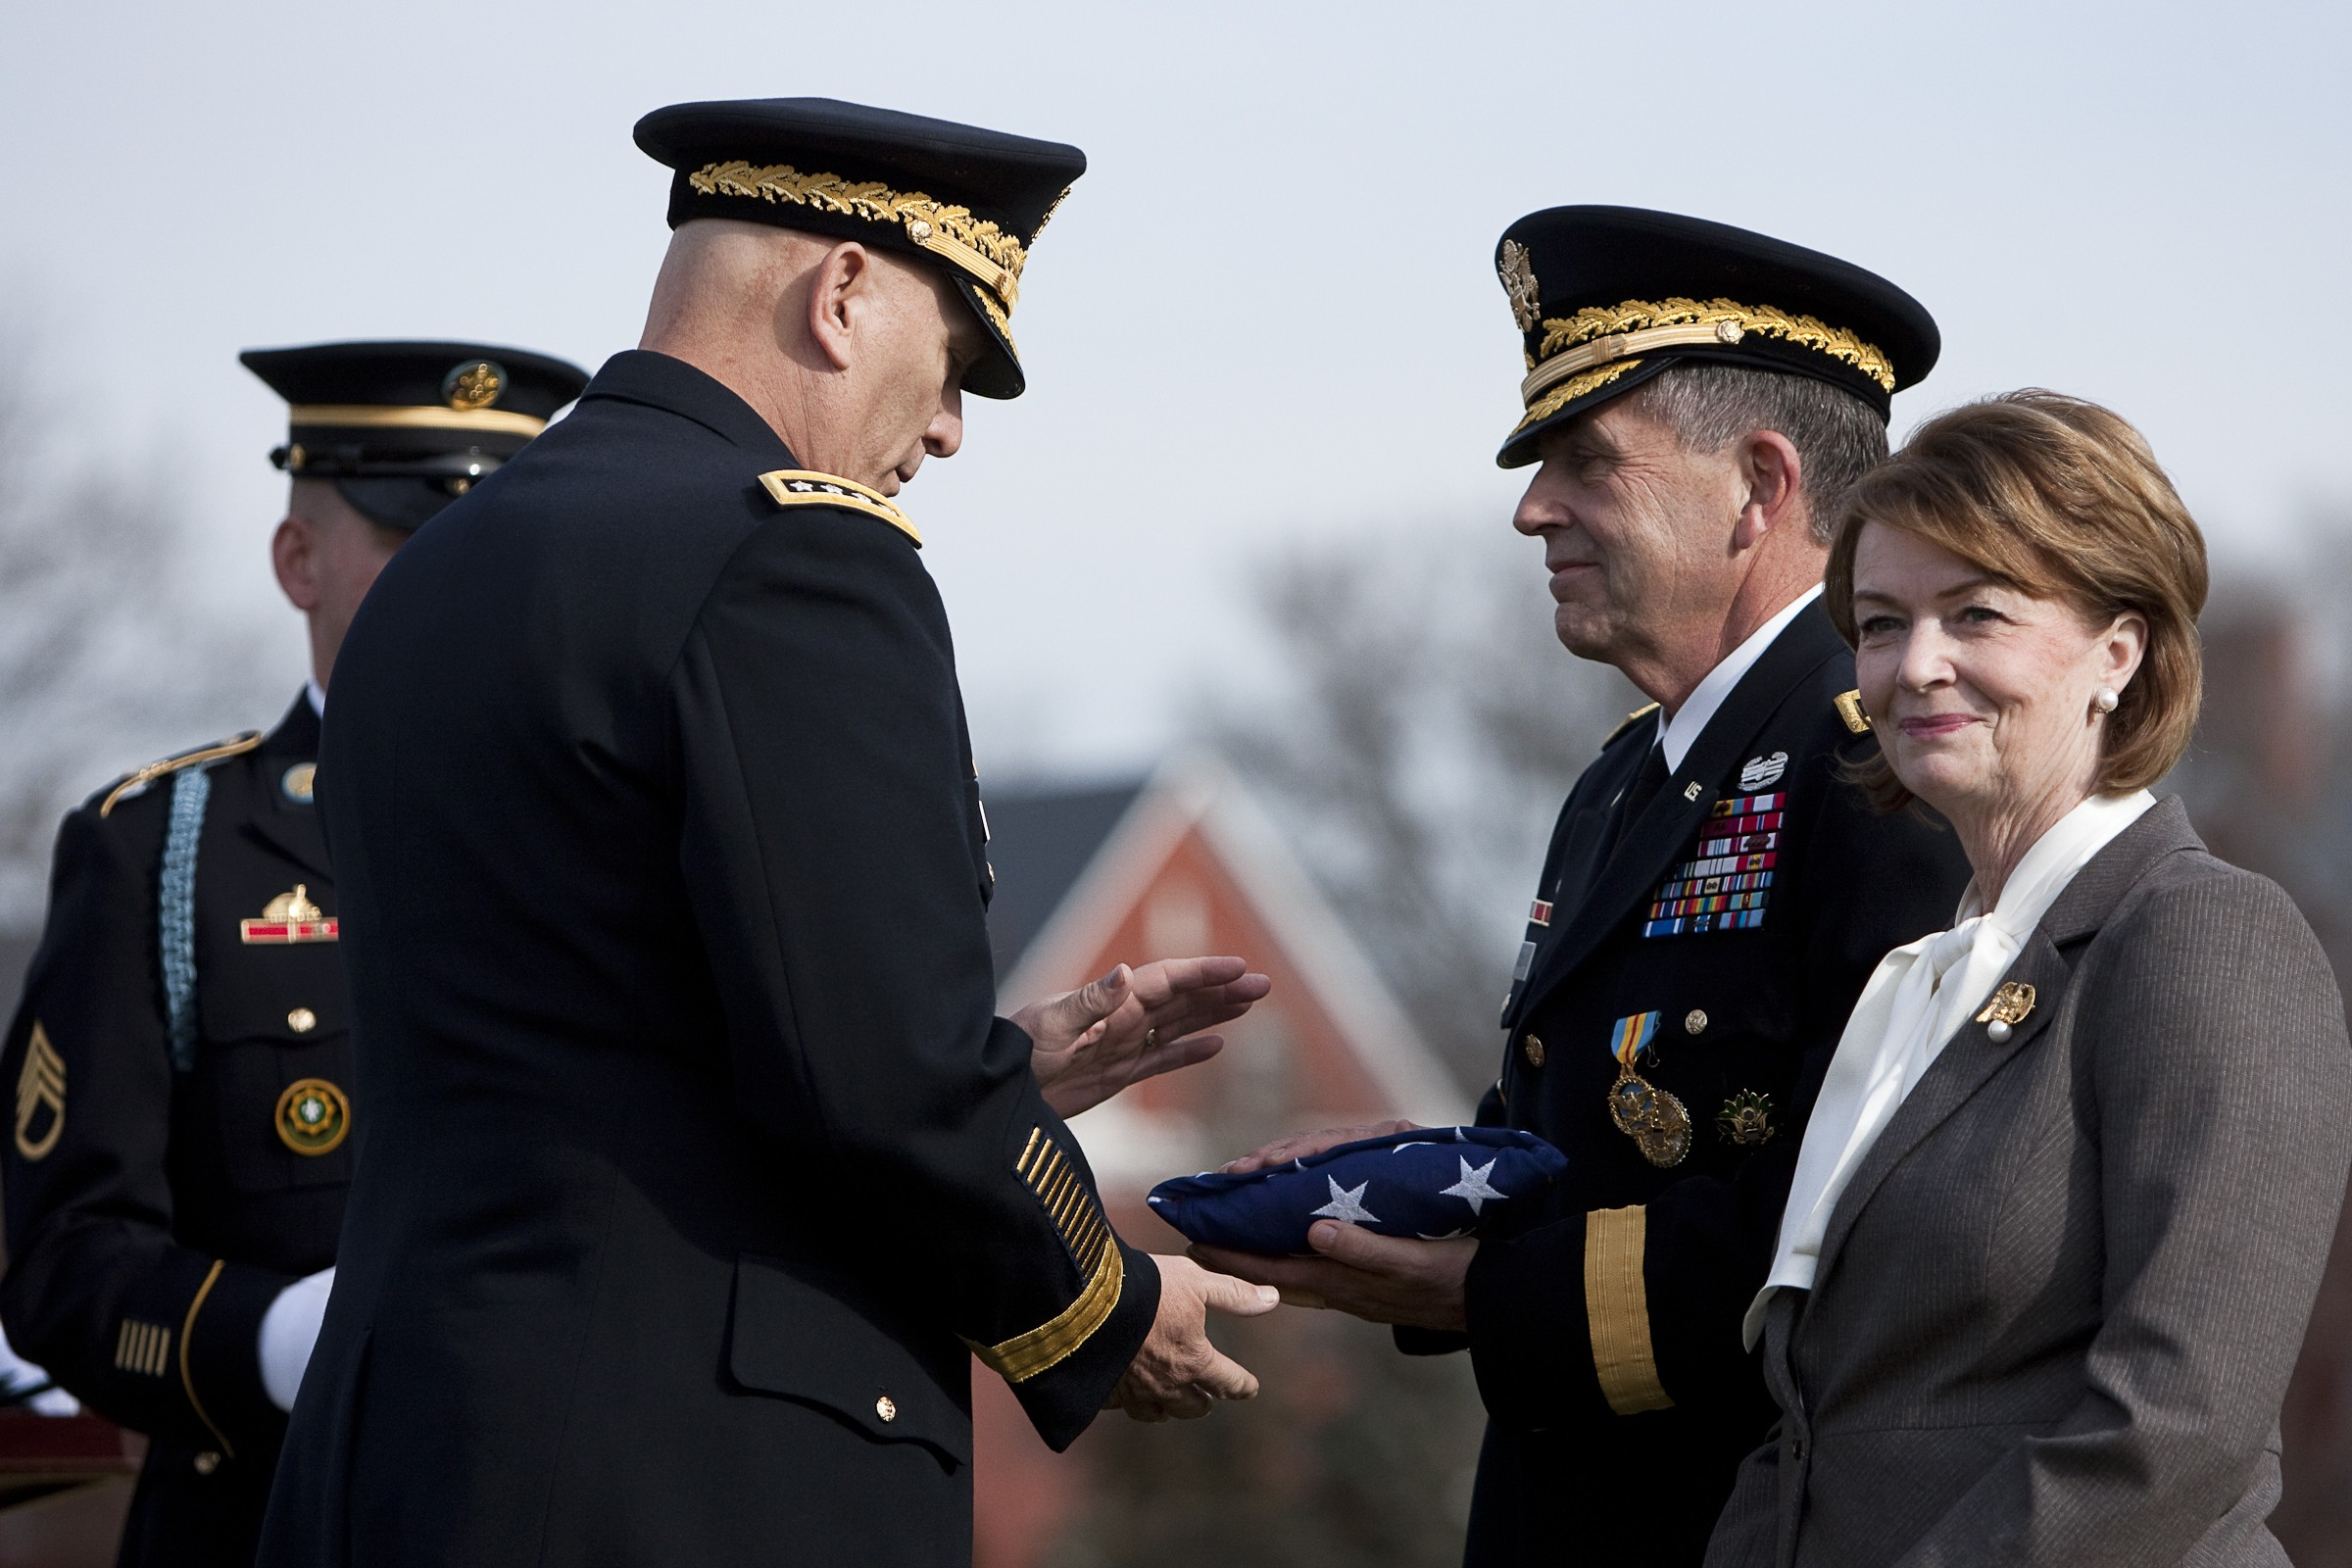 Army Vice Chief Retires After 40 Years Of Service